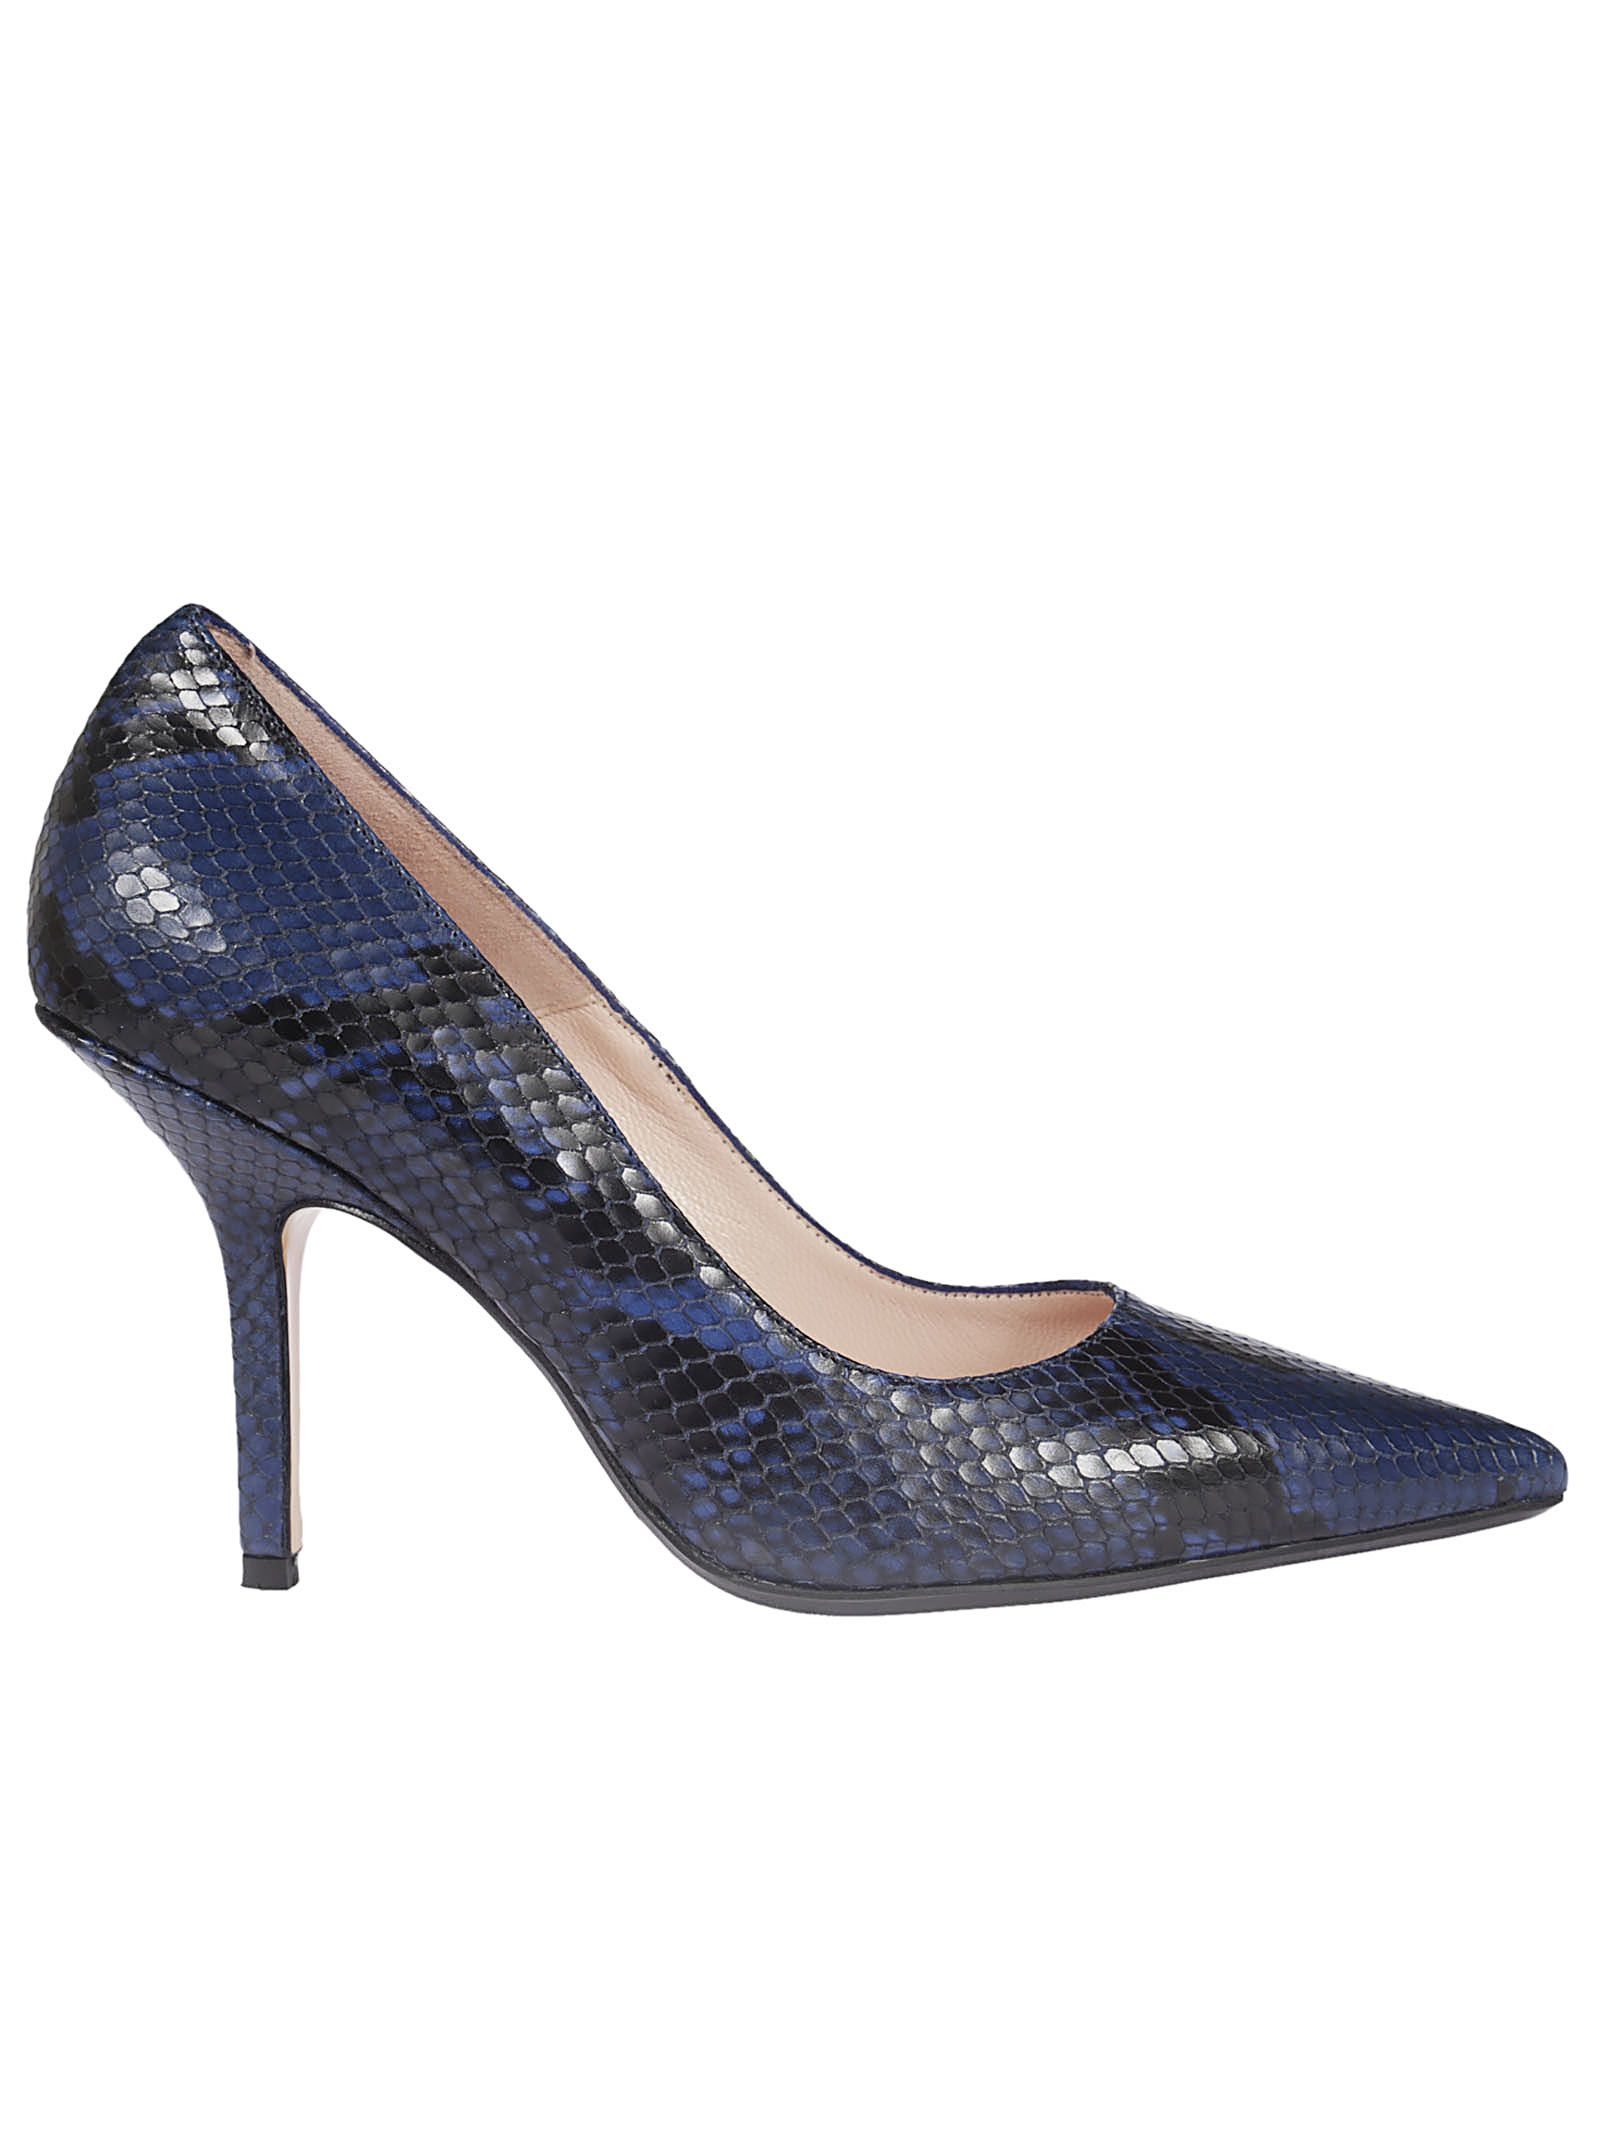 Anna F. SNAKESKINNED PUMPS